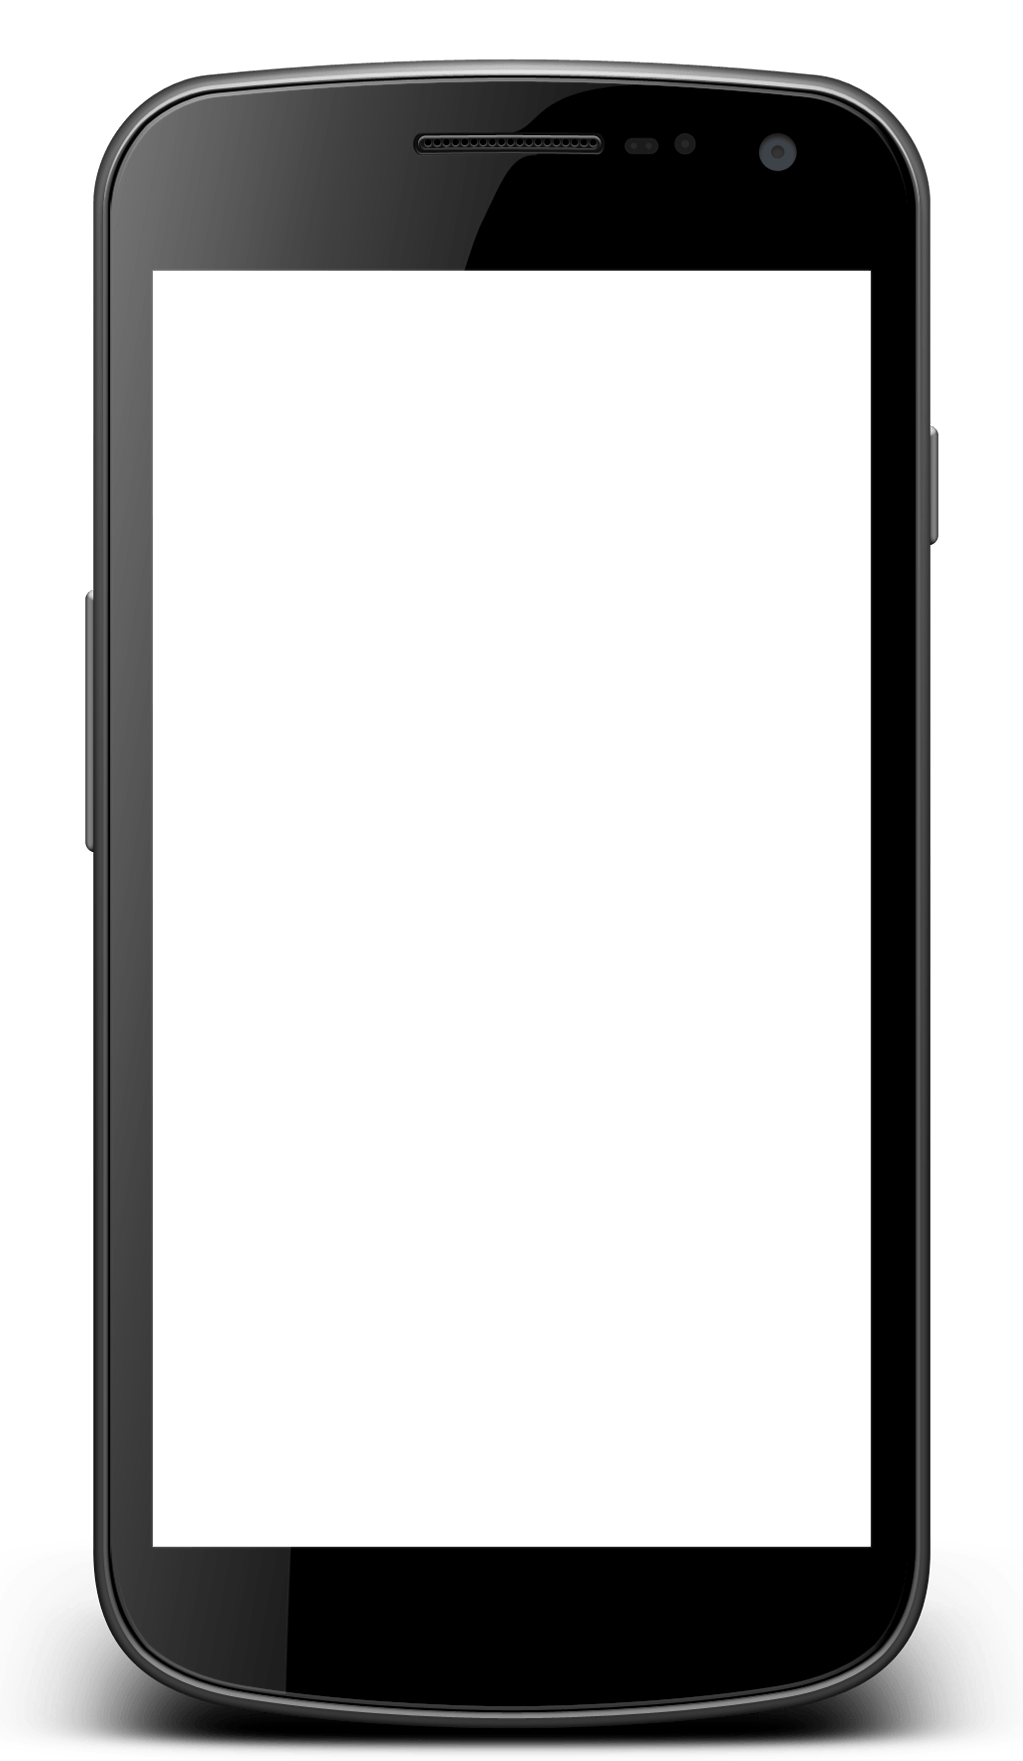 picture transparent library Smartphone clipart. Transparent background free on.